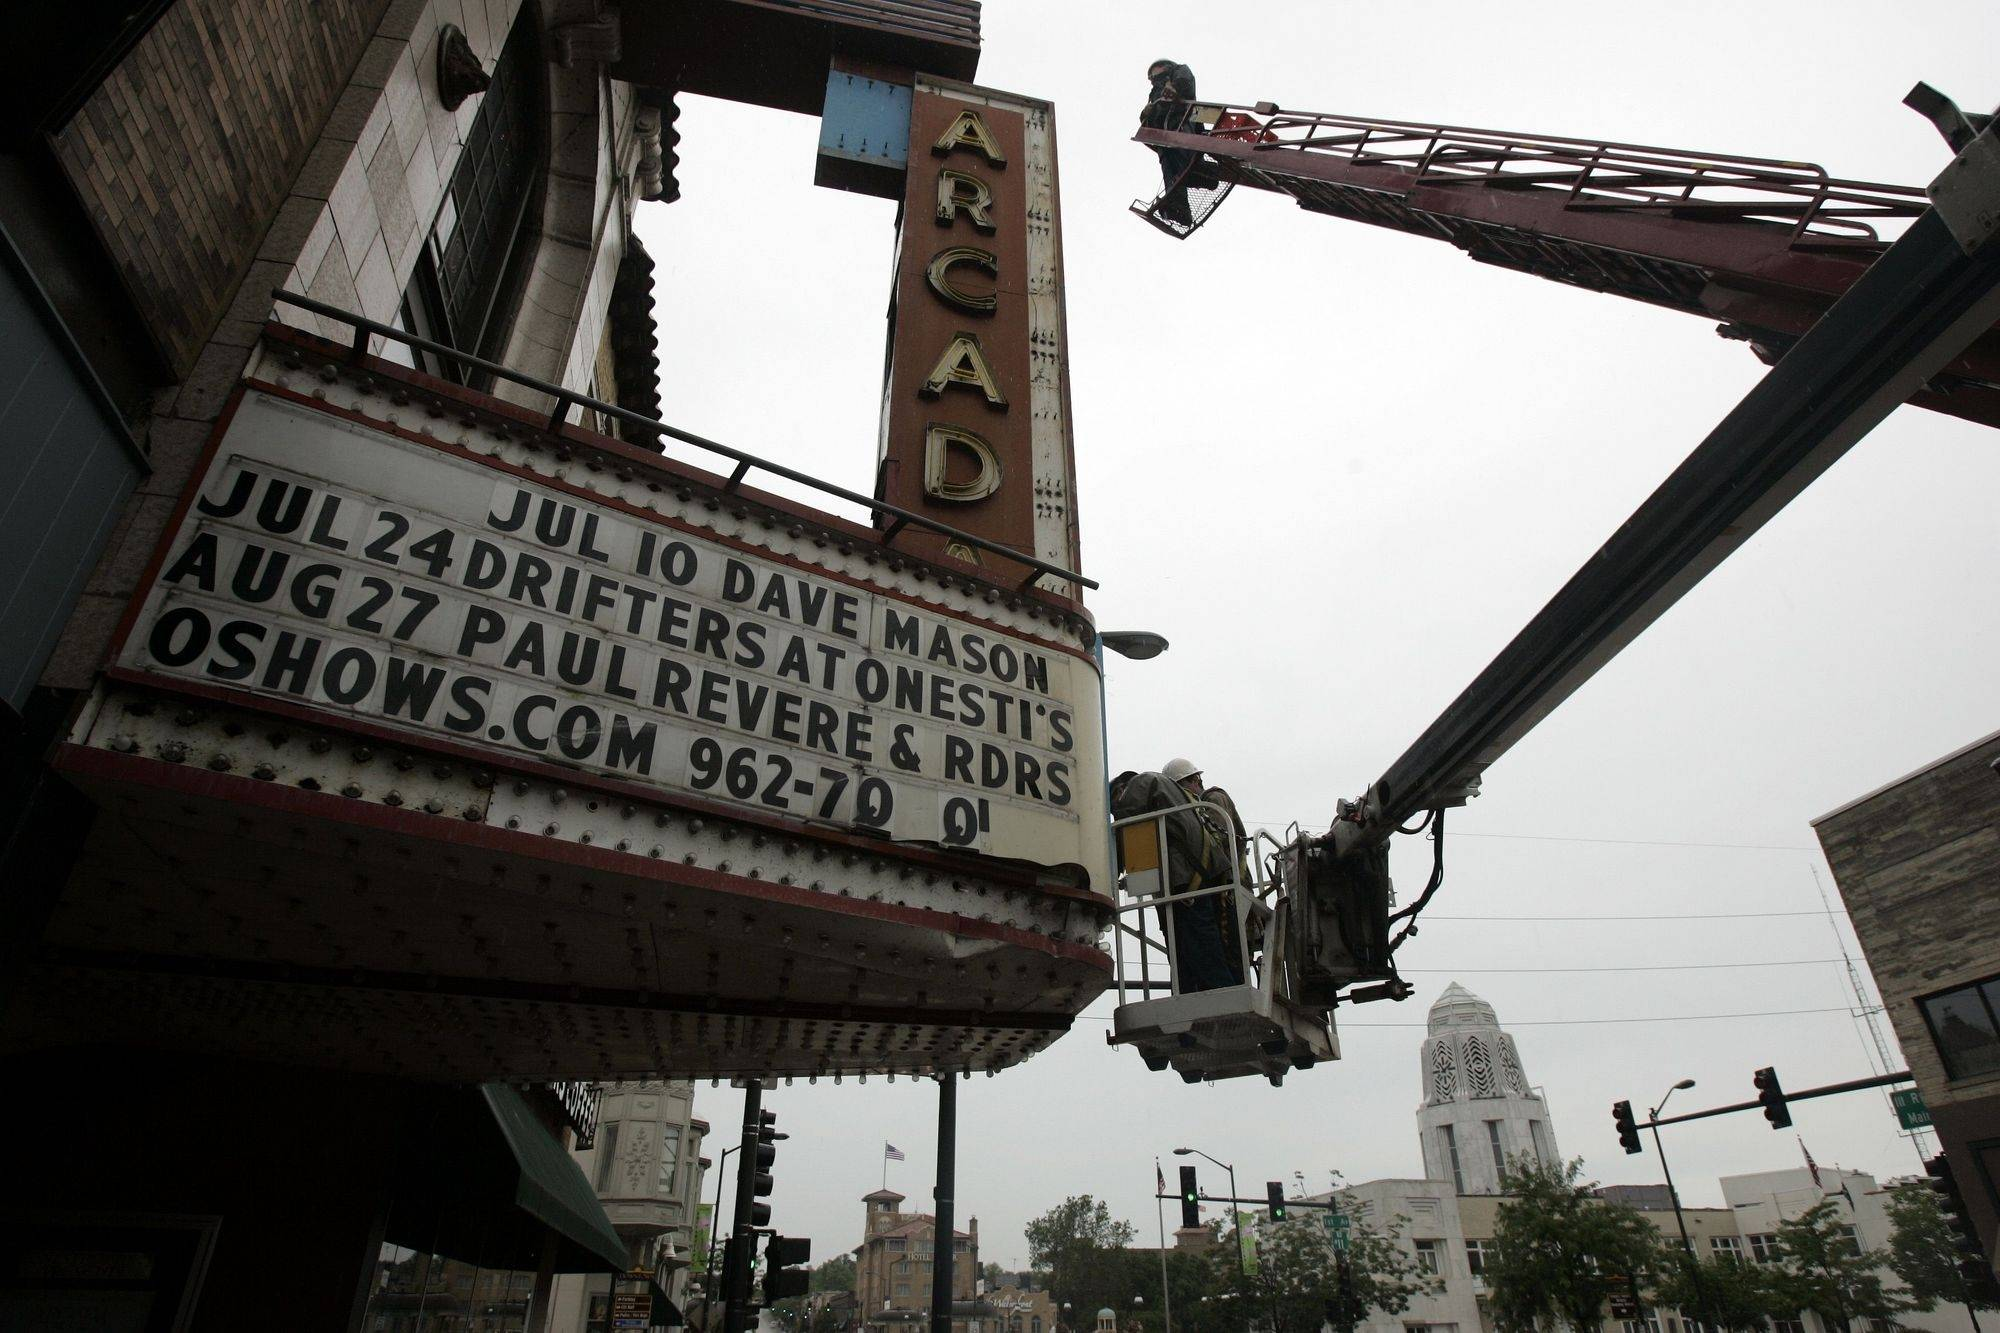 Workers started dismantling the Arcada Theatre marquee Wednesday in downtown St. Charles. Grate Signs, a Joliet company, is doing the work with help from senior design and project manager Linda Stuart, who lives in St. Charles.